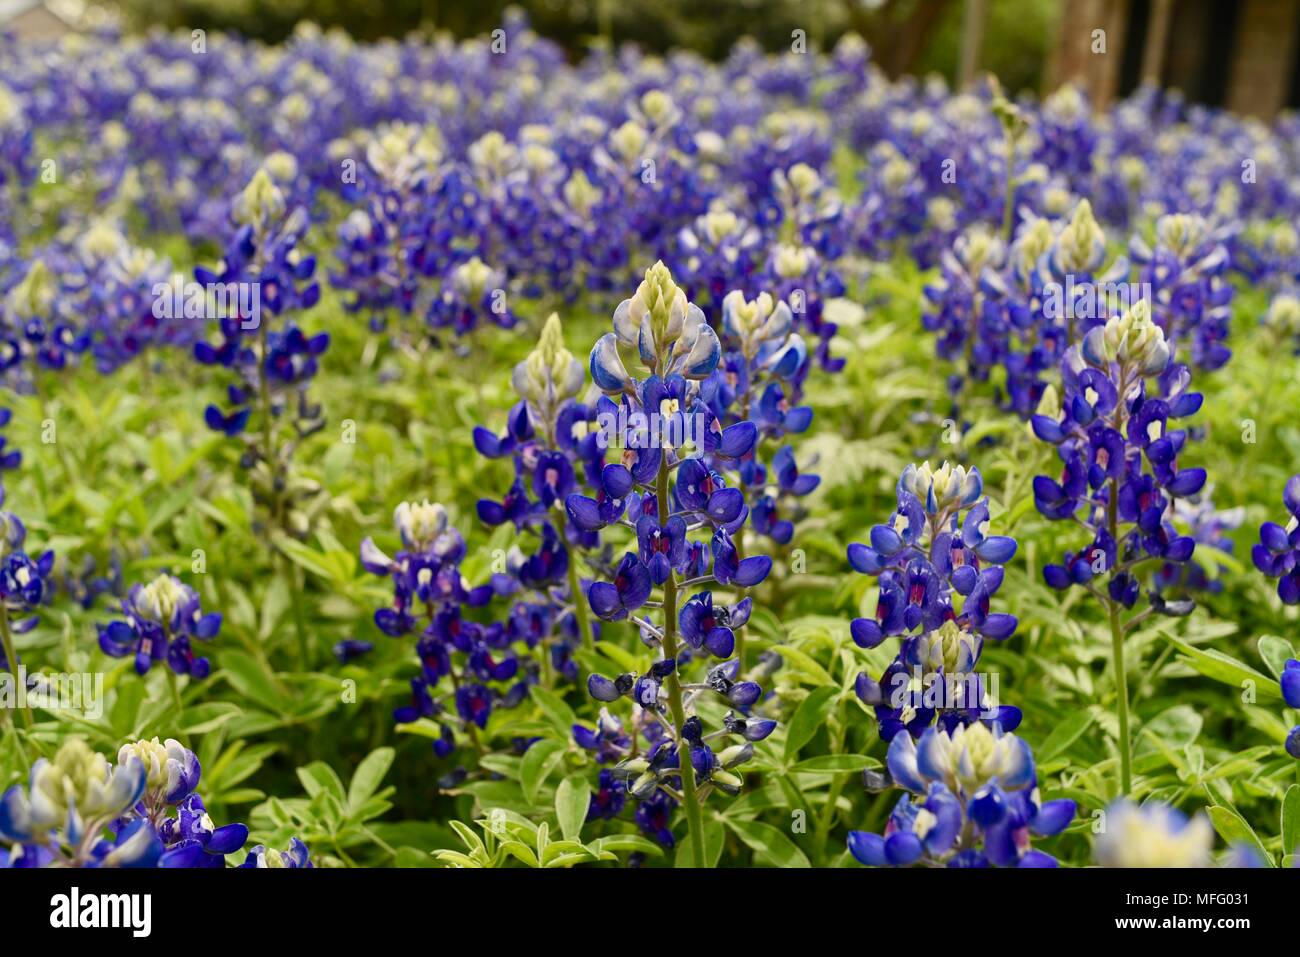 Spring blooming of texas bluebonnets state flower of texas growing spring blooming of texas bluebonnets state flower of texas growing in front yard of home in historic district fredericksburg texas usa mightylinksfo